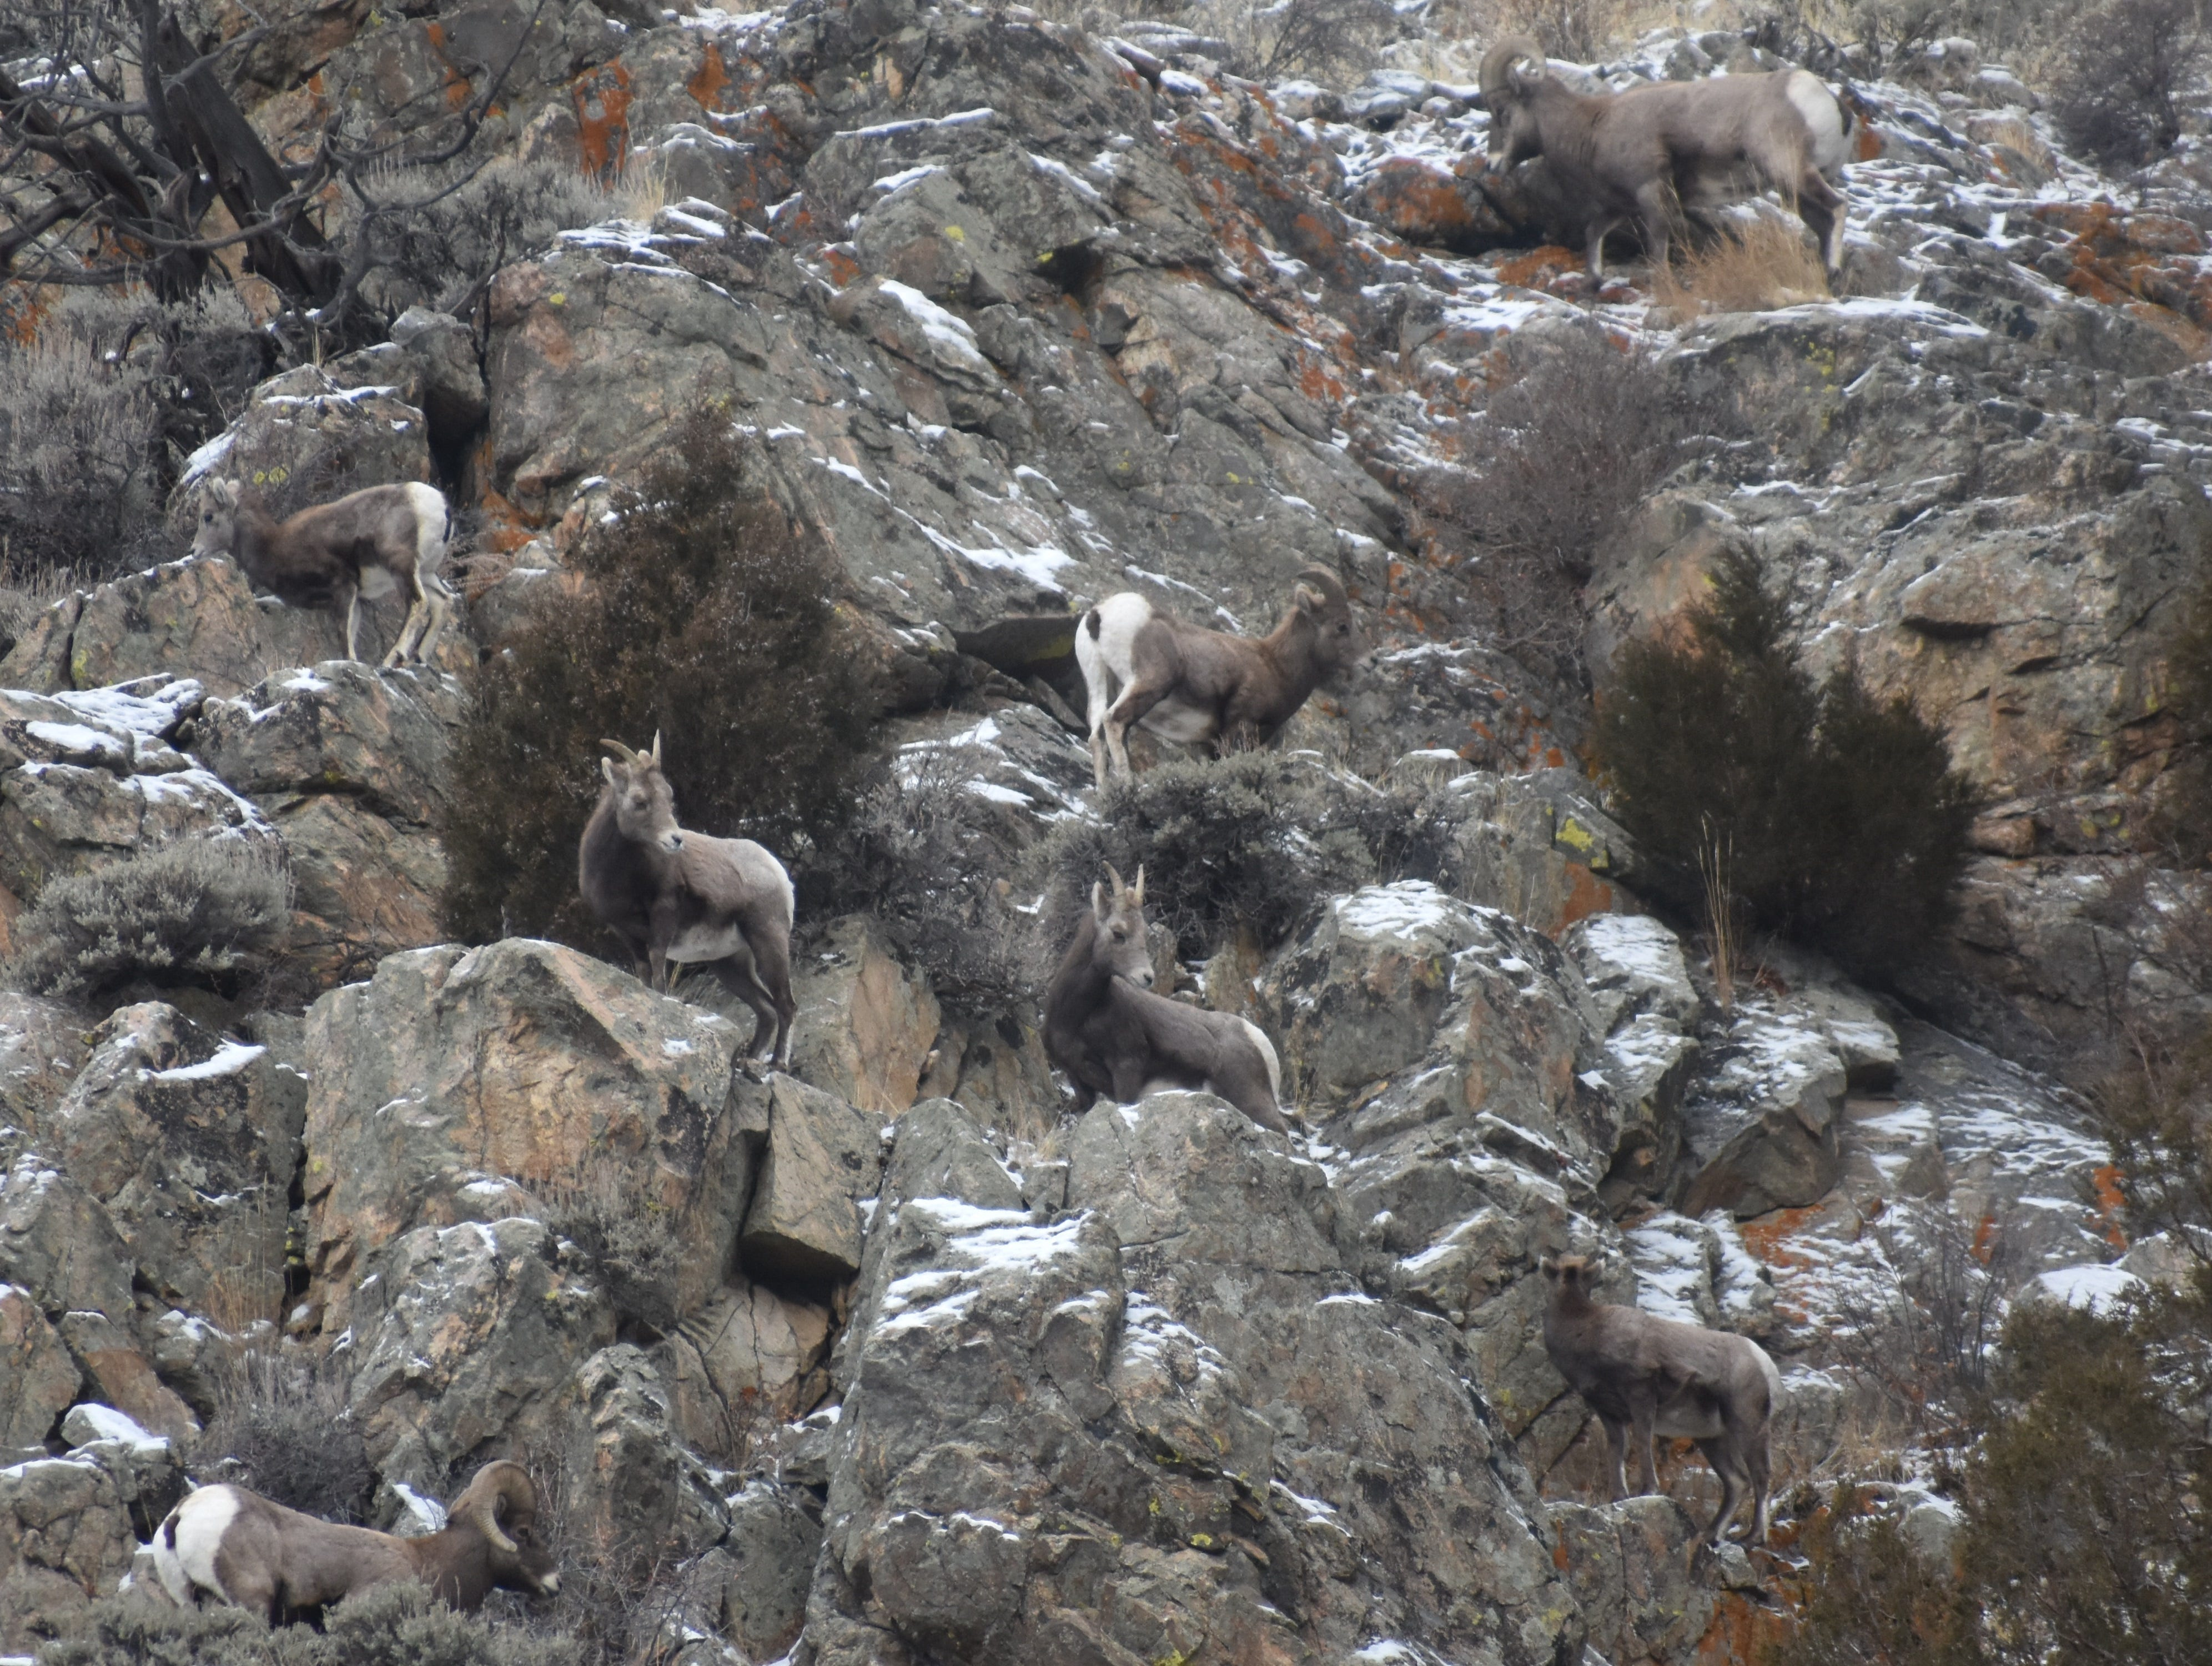 Bighorn sheep can nearly always be found on south-facing slopes in winter, where they have access to grass.